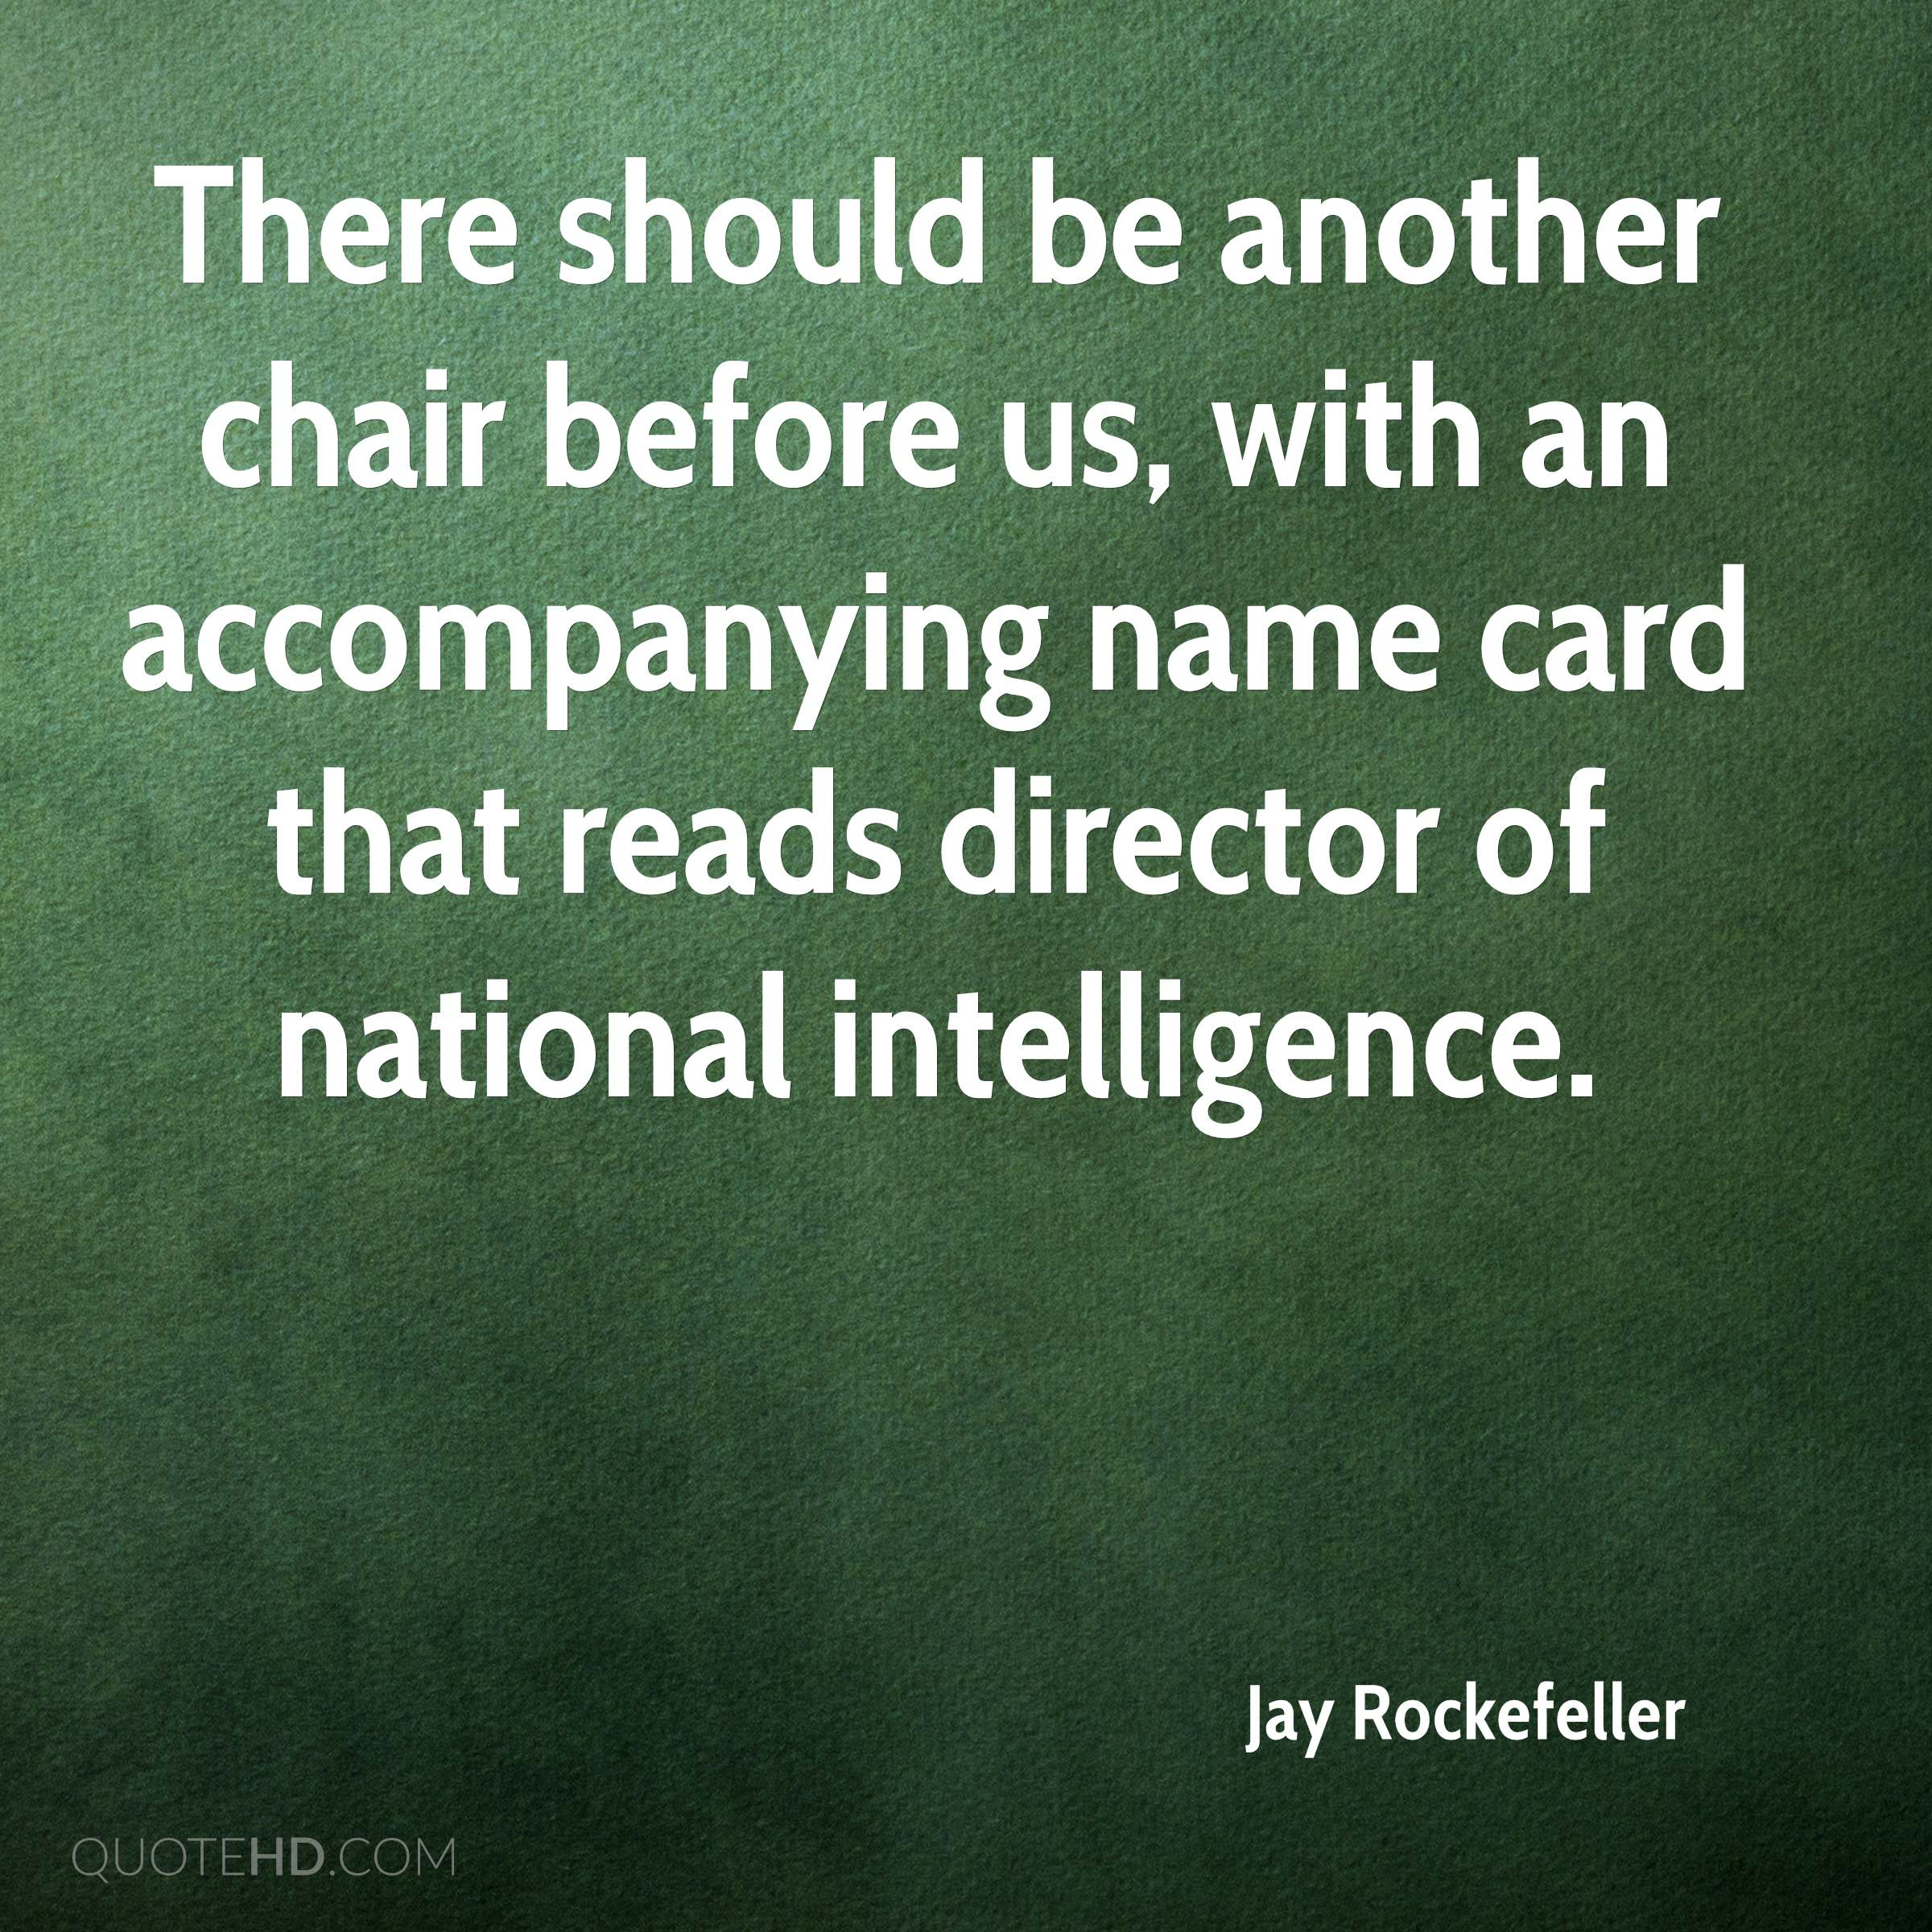 There should be another chair before us, with an accompanying name card that reads director of national intelligence.